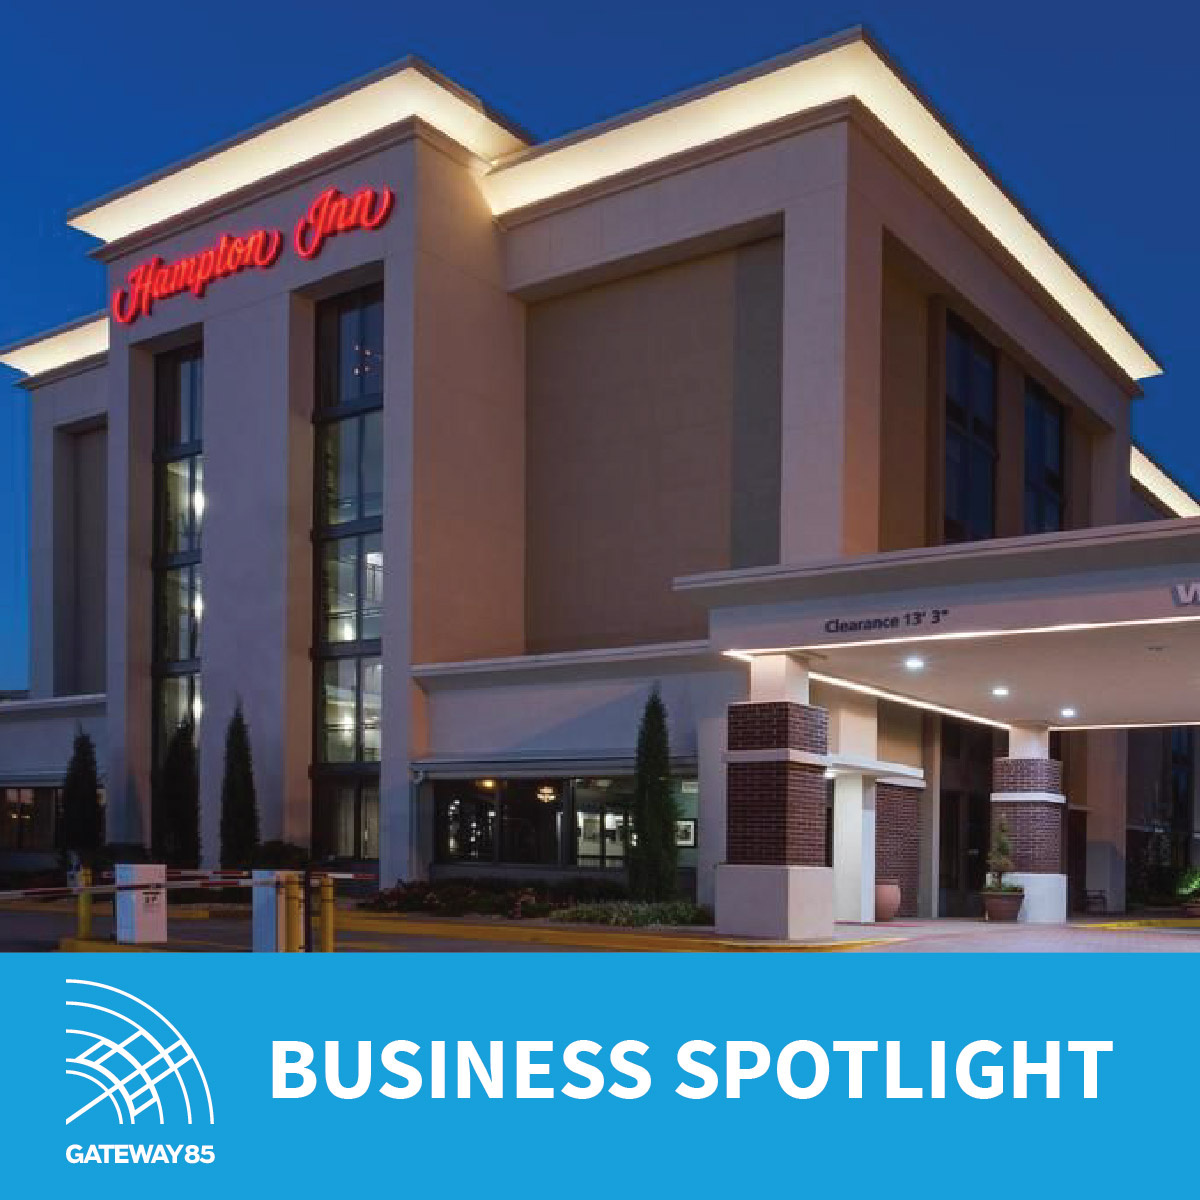 Hampton Inn Norcross - Business Spotlight